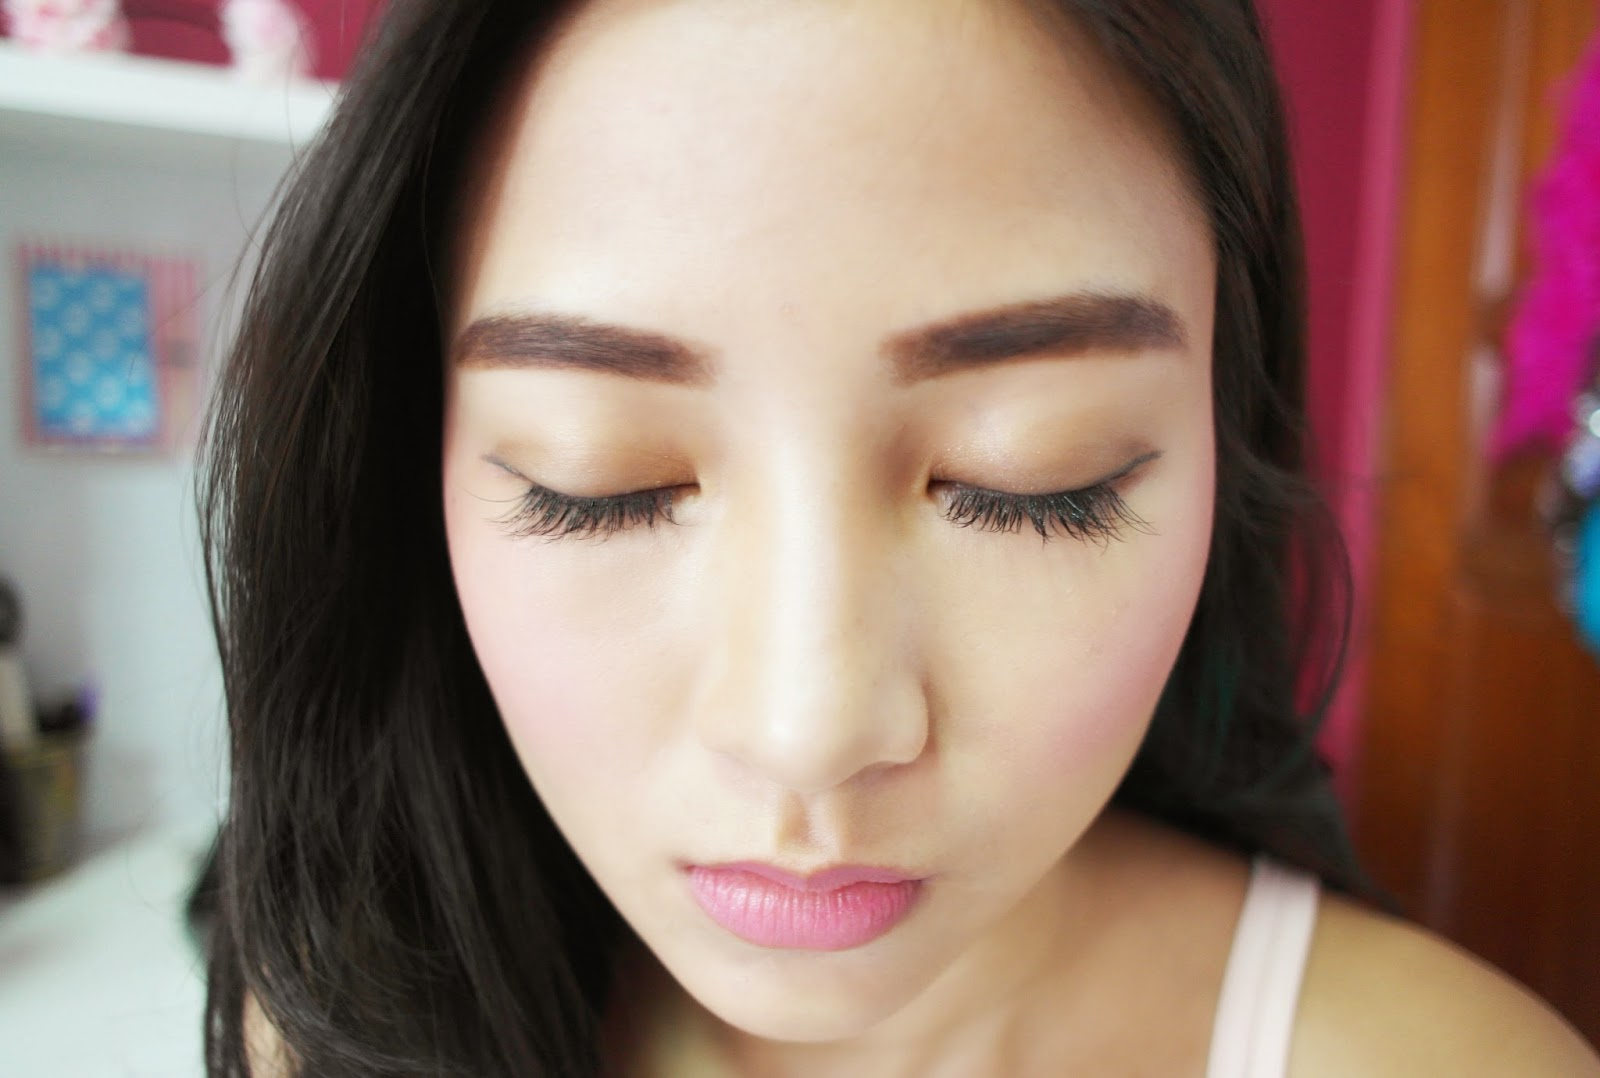 c41e761bf6e EUNICE ANNABEL: Eyelash Extensions- Yes or No? X Adverts- Hooked ...